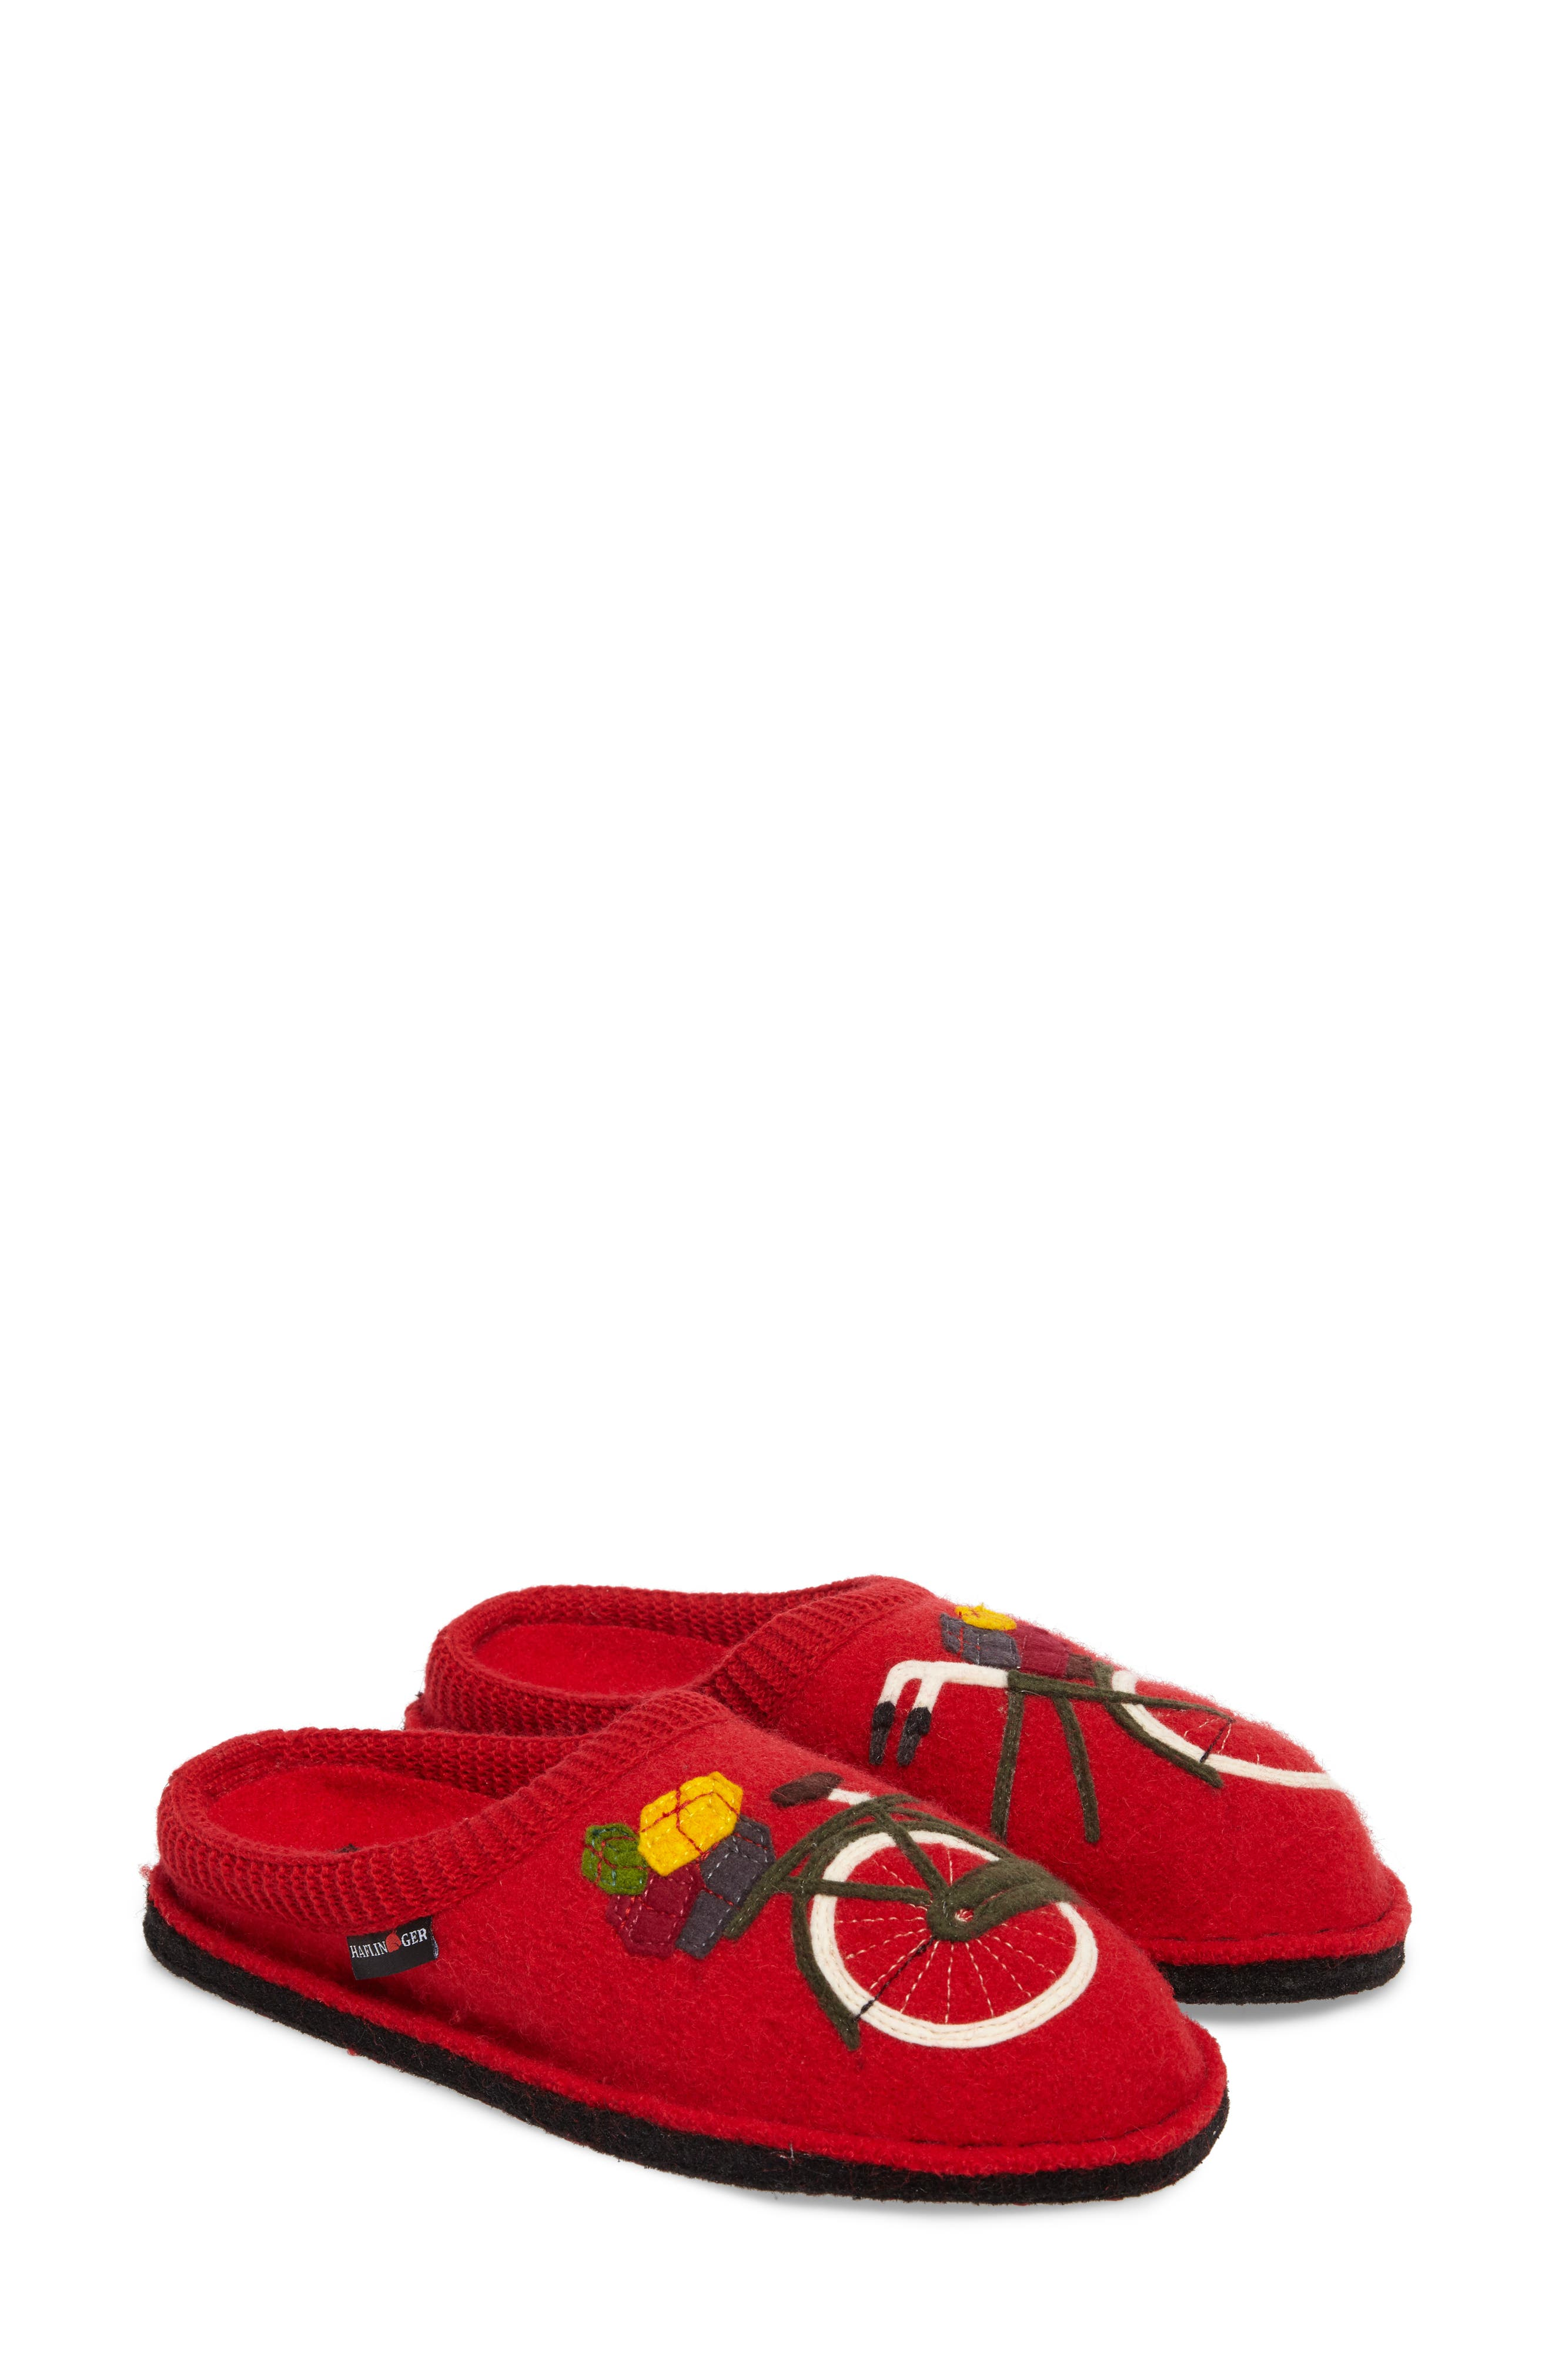 Bicycle Slipper,                             Alternate thumbnail 3, color,                             Bicycle Red Wool